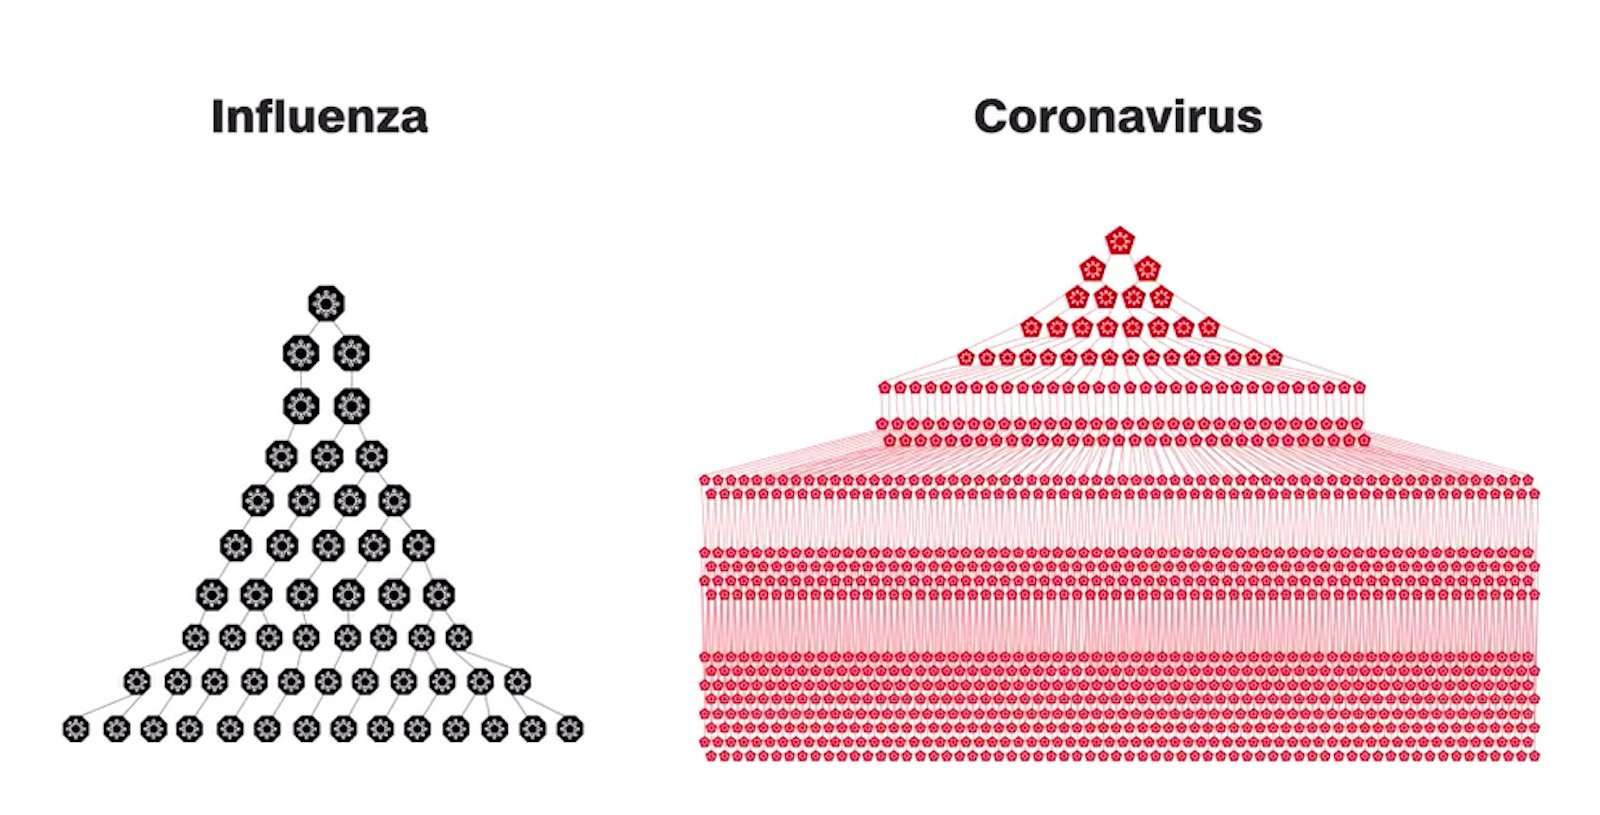 Coronavirus has killed more than 100,000 people across the US